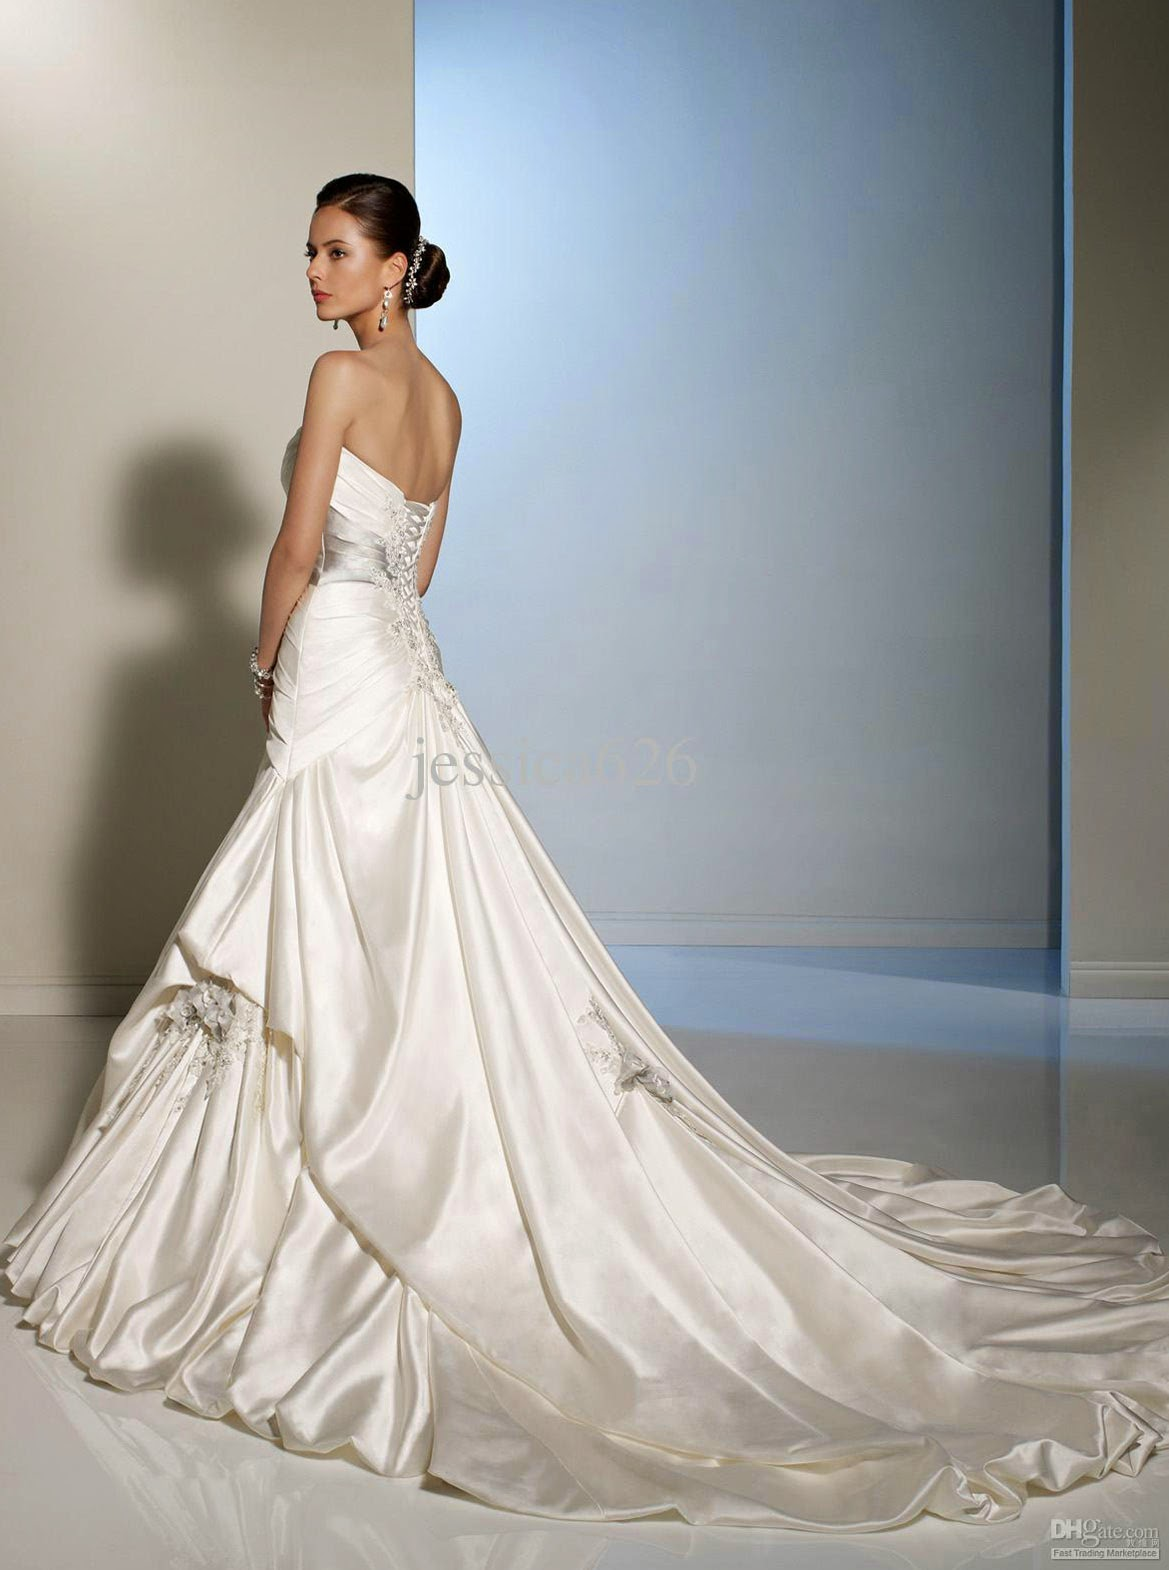 A Fishtail Wedding Dress : Ivory wedding dresses fishtail style design ideas